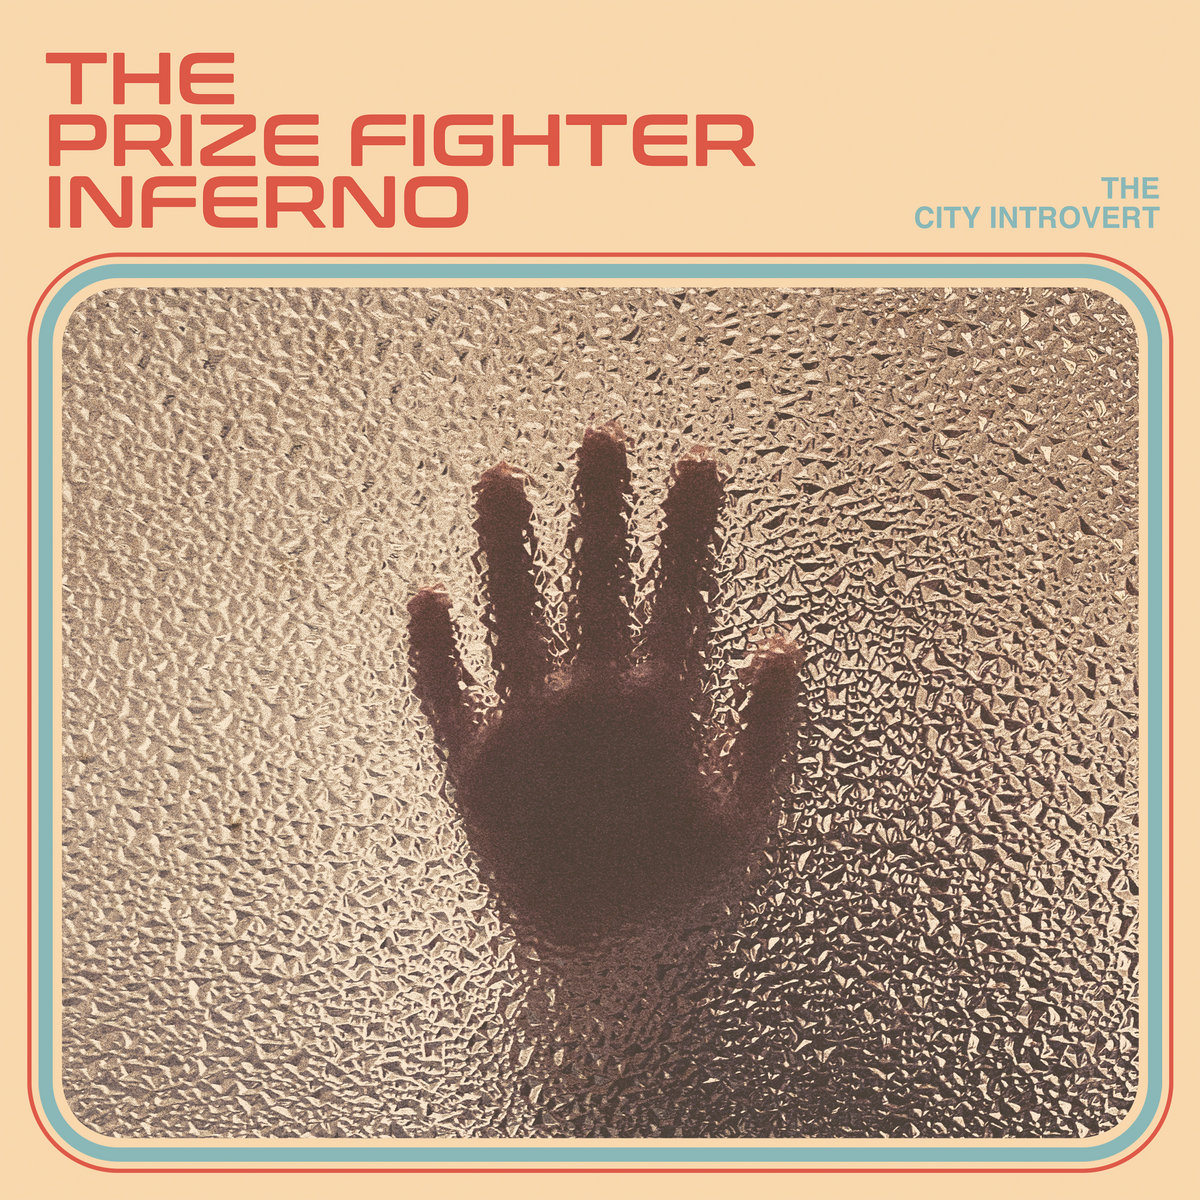 The Prize Fighter Inferno - THE CITY INTROVERT Cover